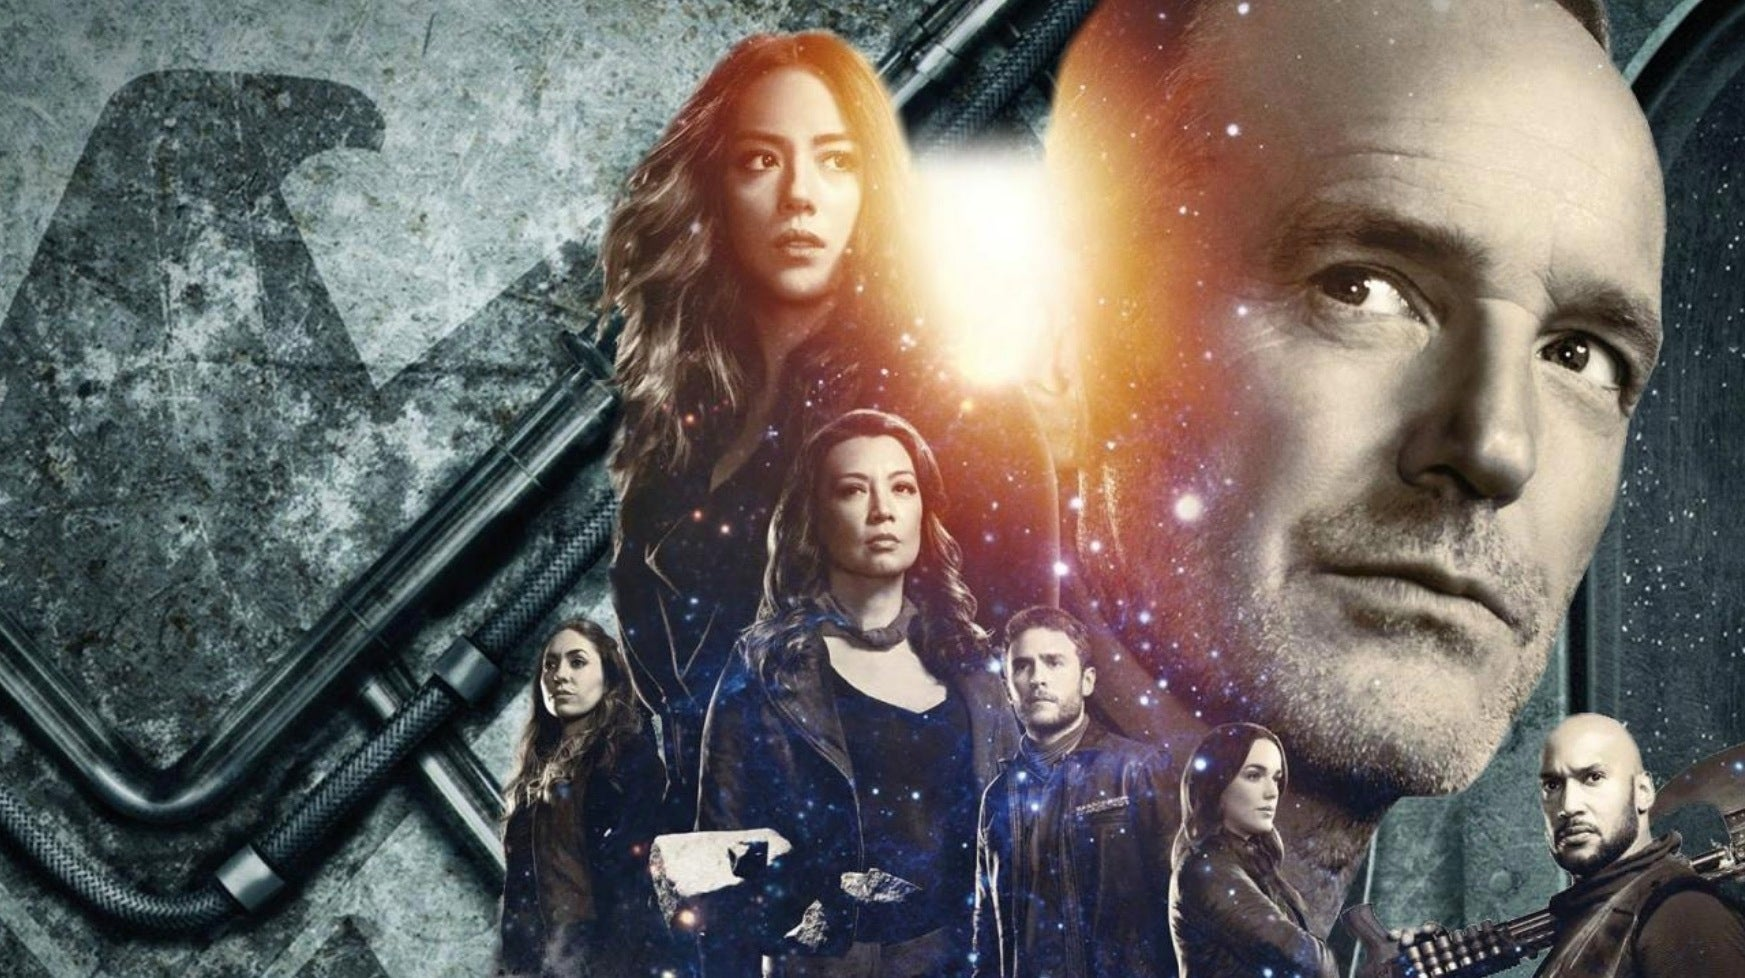 Season 6 Is On The Way, But Agents Of SHIELD Is Officially Getting A Season 7 Too